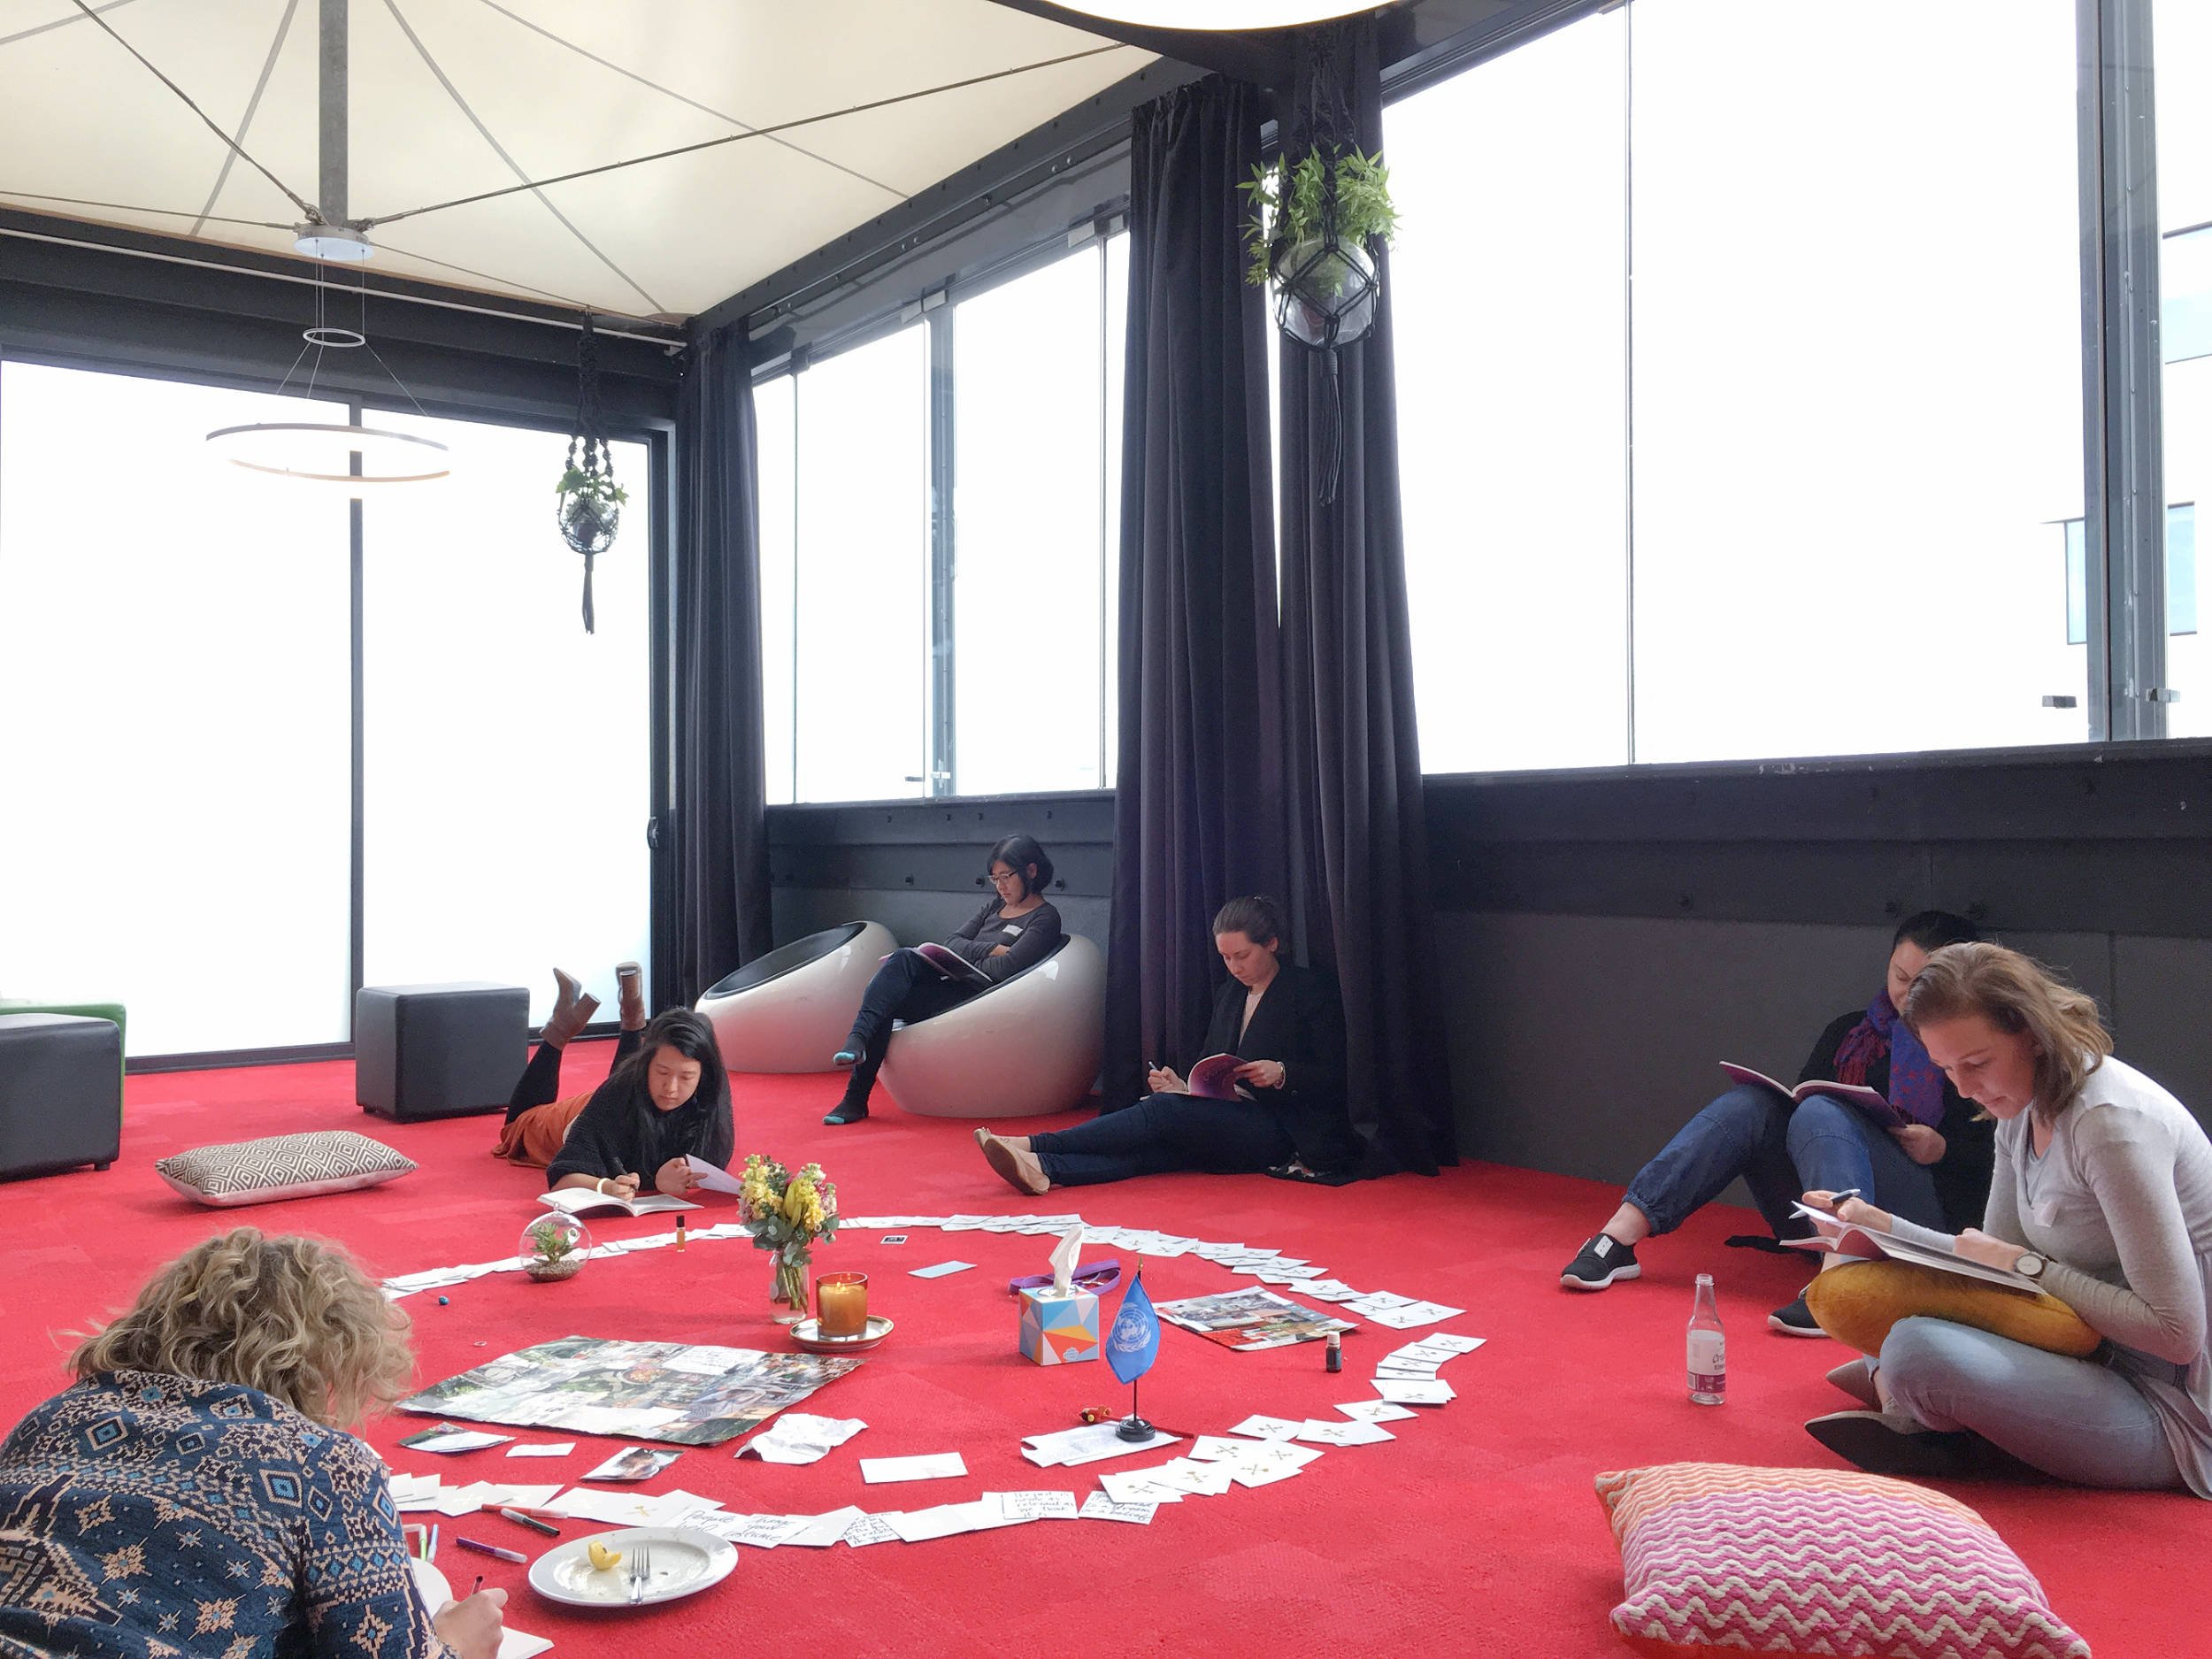 The spacious and light-filled rooftop venue for the  Inspired and Intentional  urban retreat...plenty of room to spread out in whatever way was comfortable! Photo by Jade Tjia, 12 August 2017.